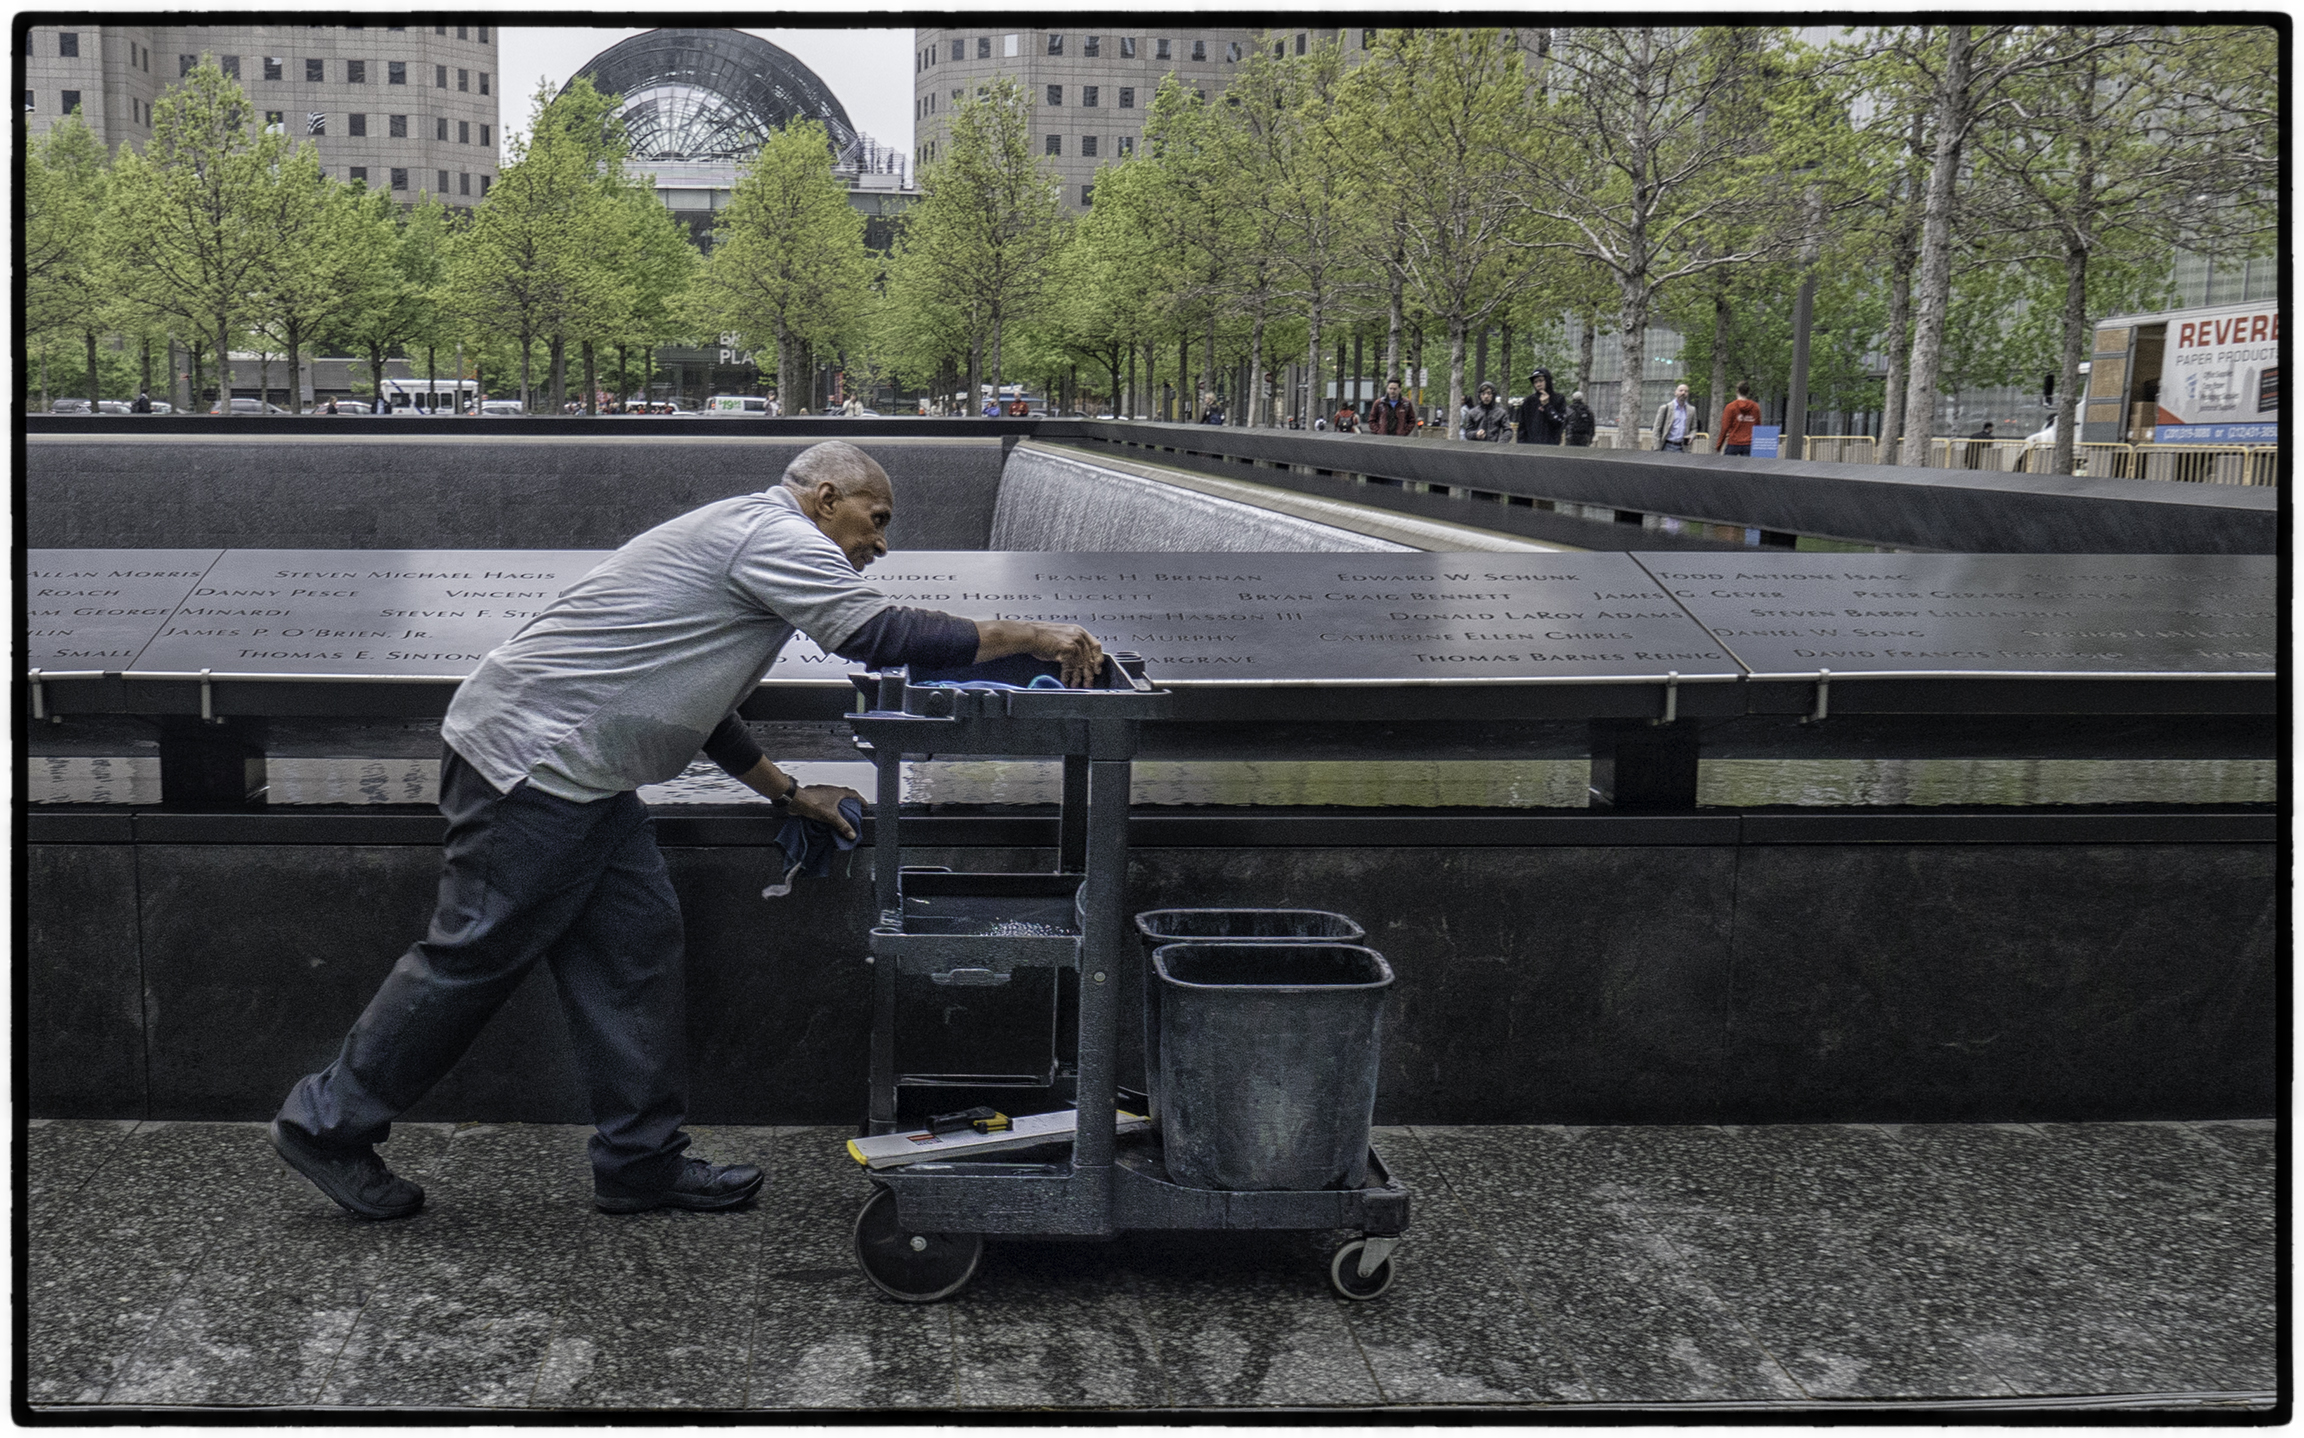 Cleaning the Fountain at 9/11